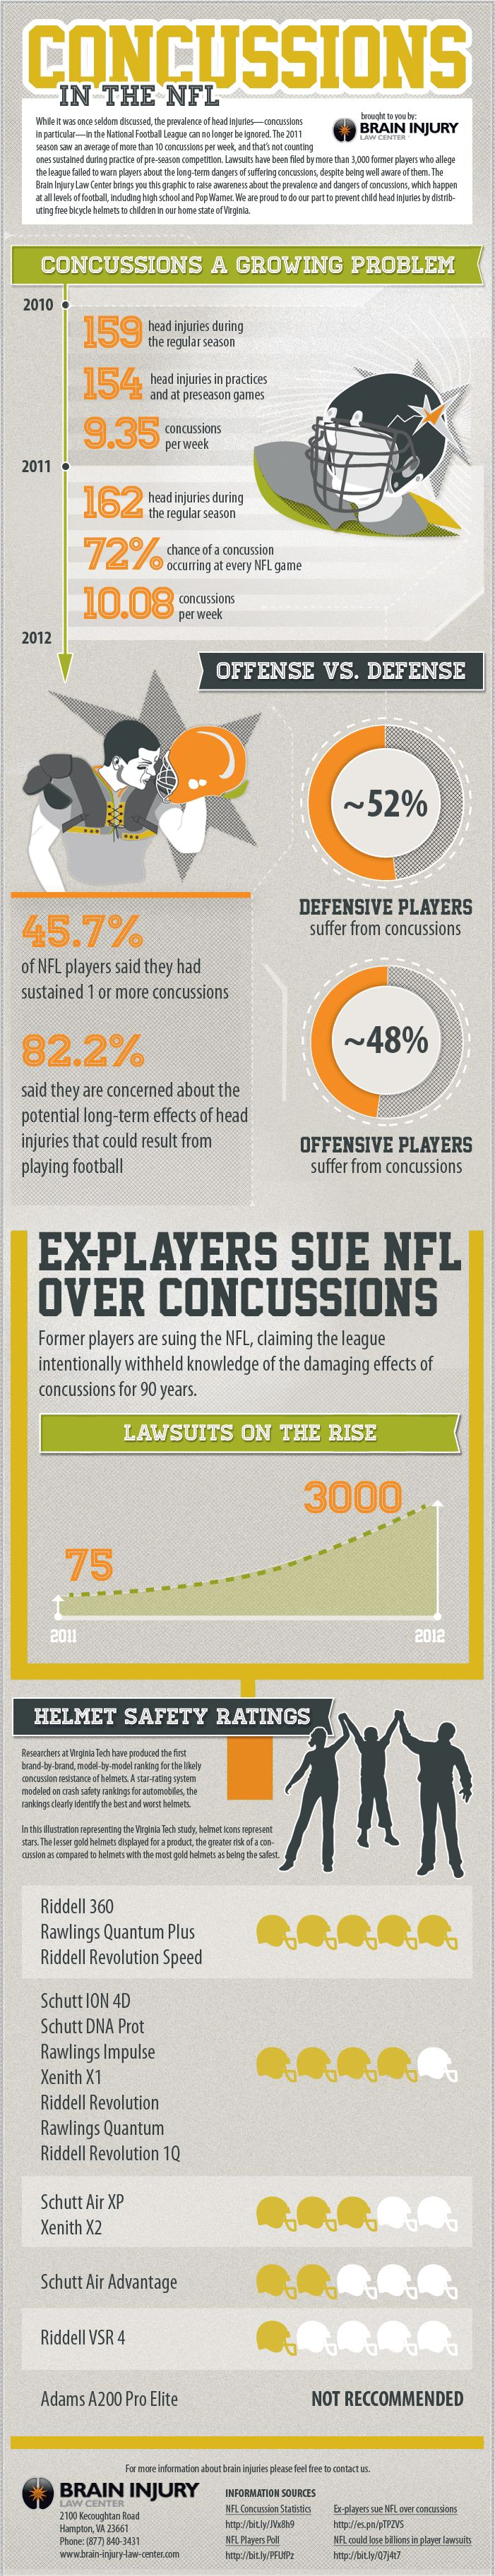 This Infographic Illustrates The Growing Numbers Of Concussions In